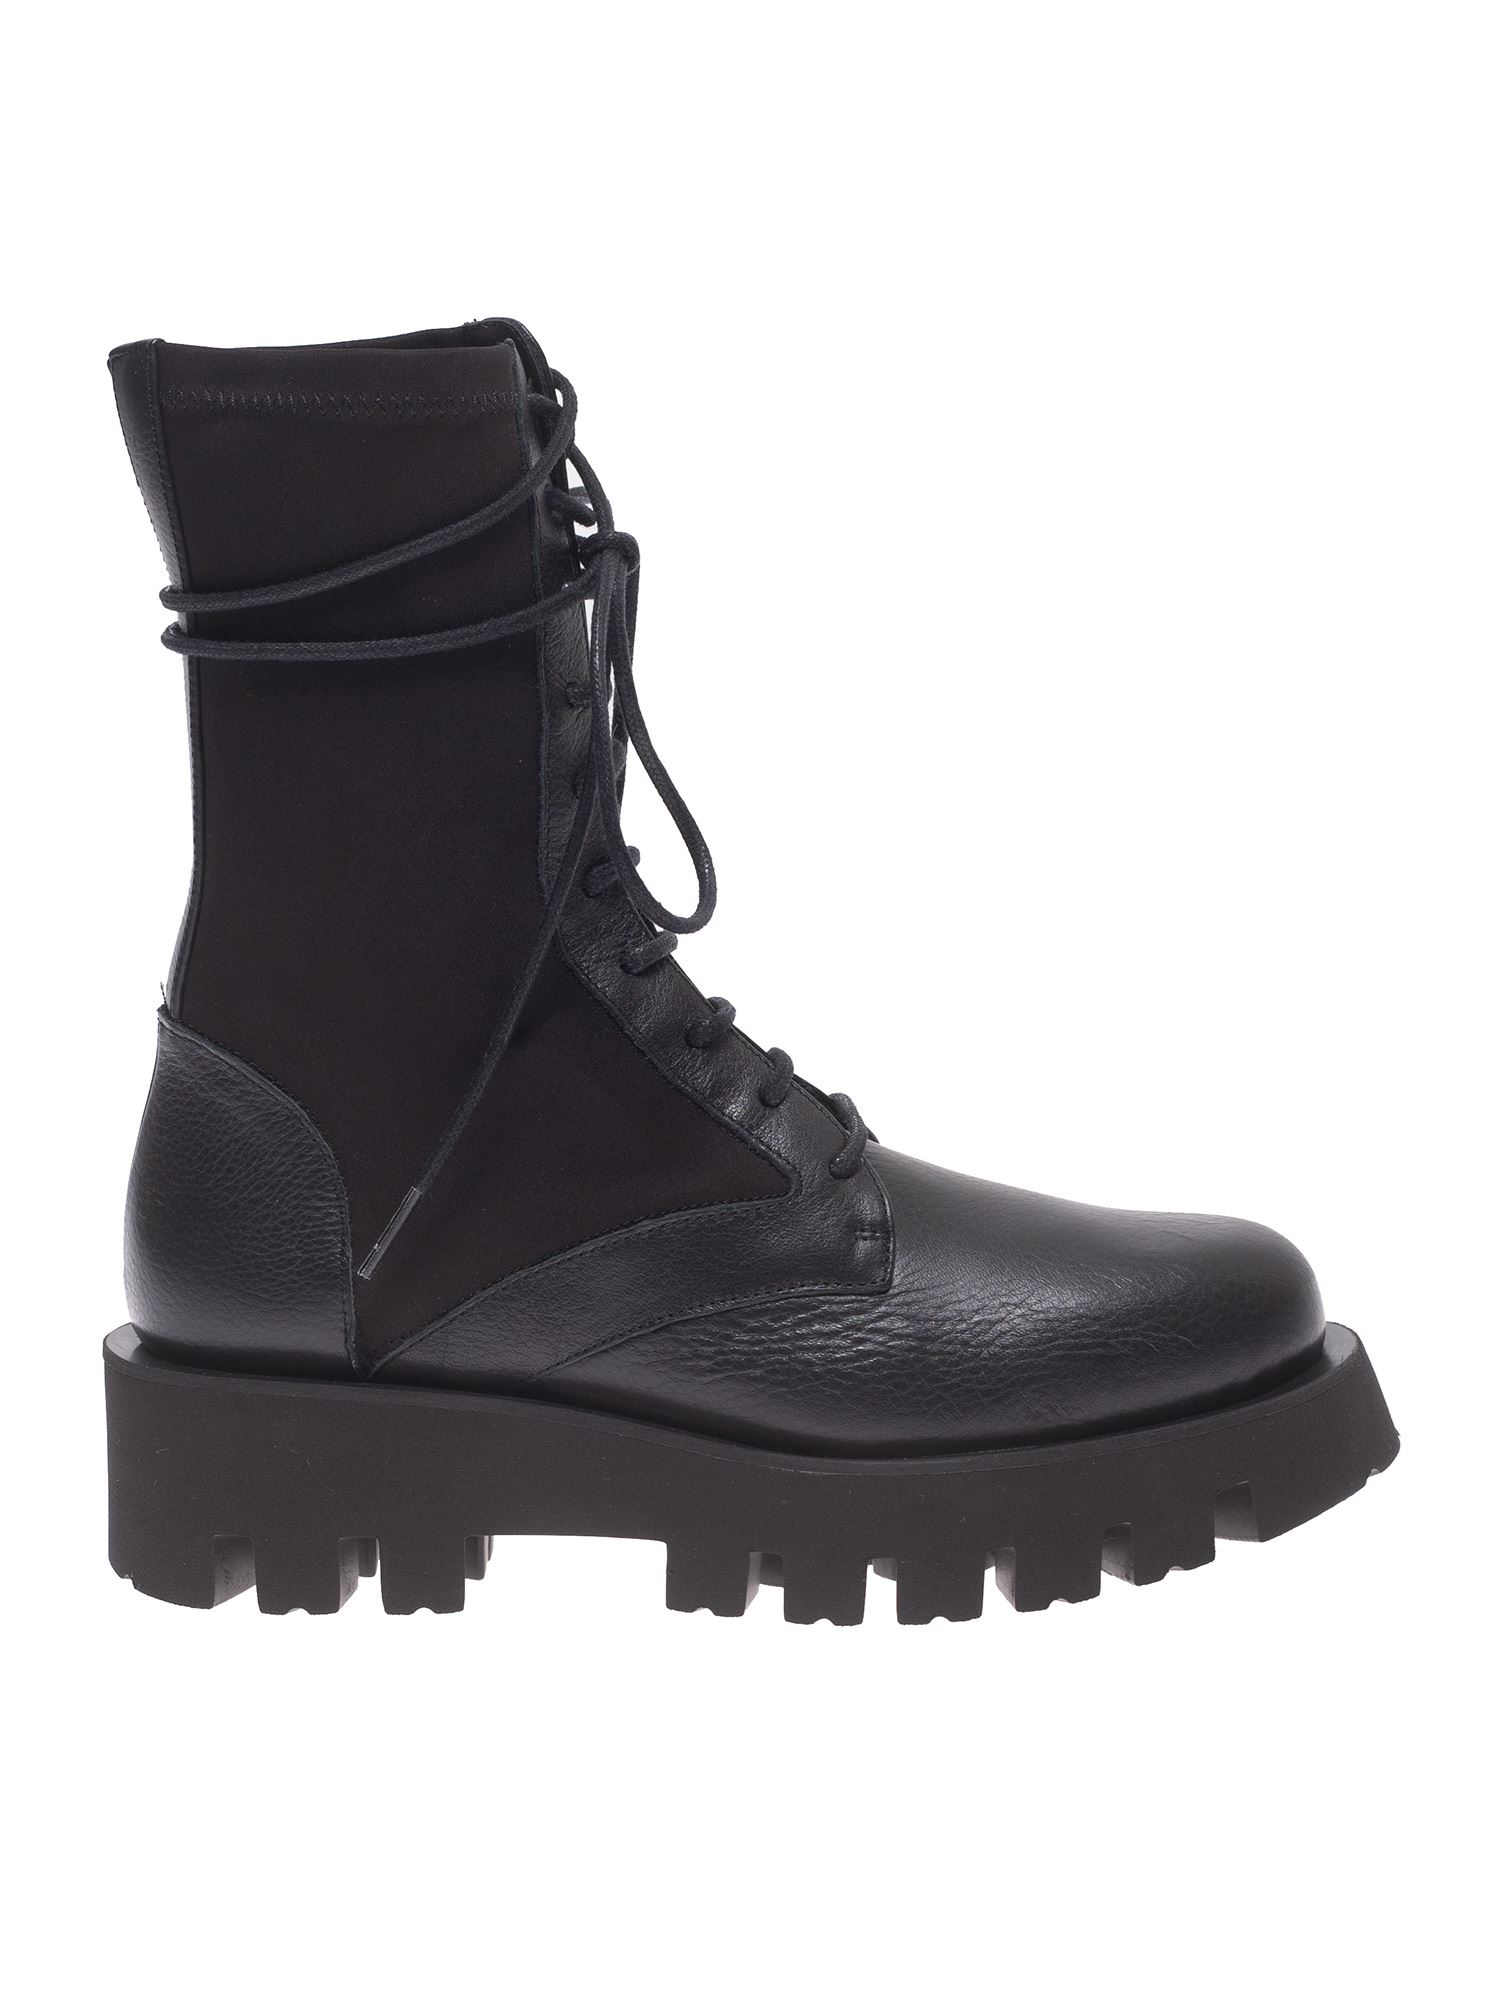 Paloma Barceló PORTO ANKLE BOOTS IN BLACK